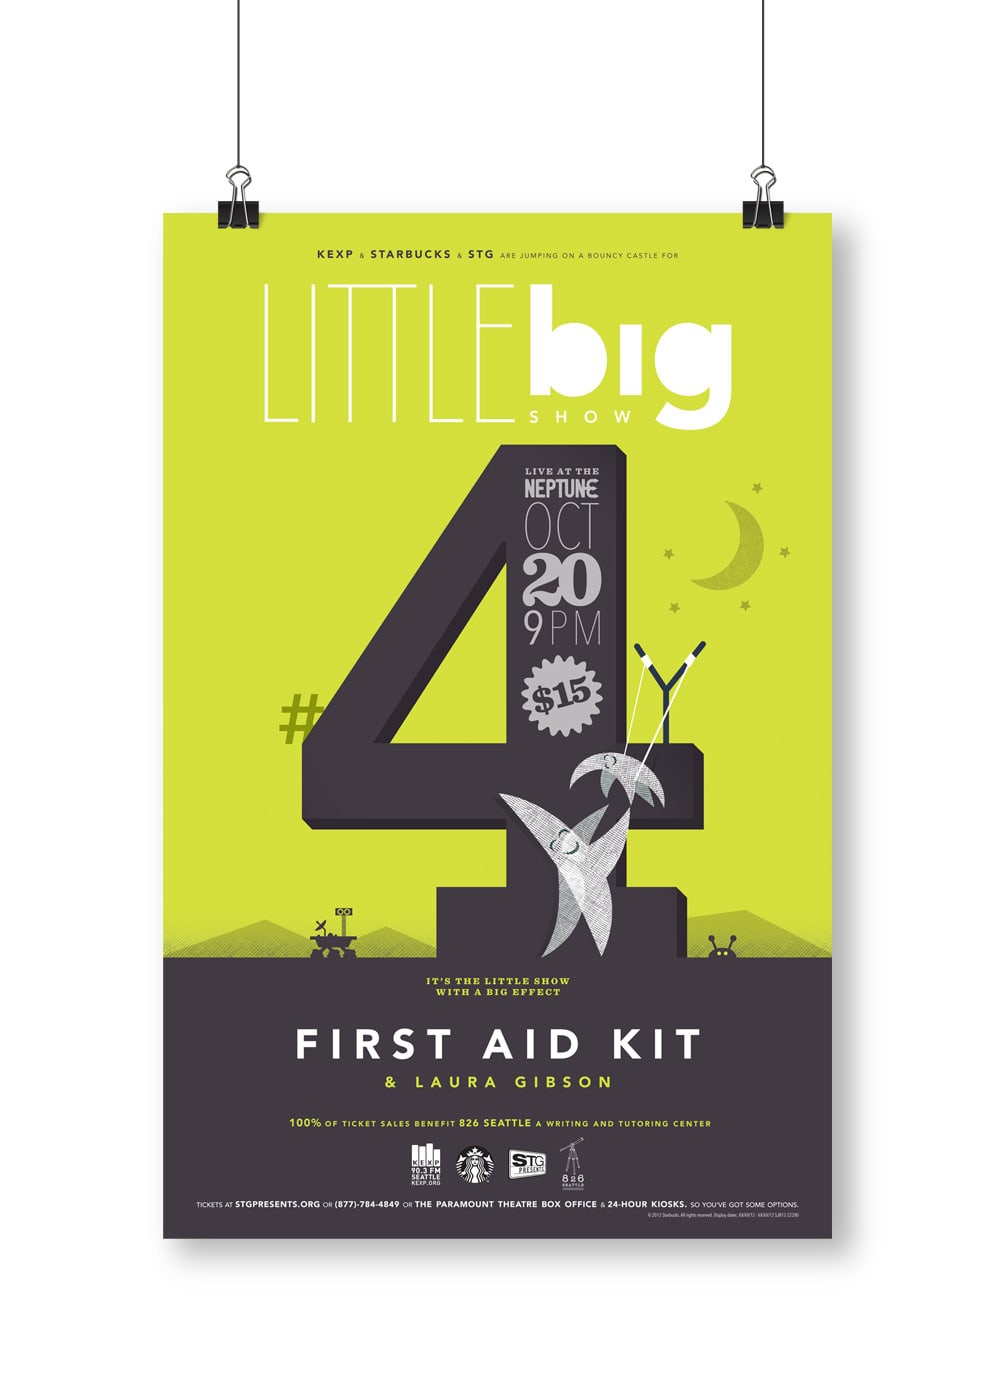 Little Big Show Gig Posters